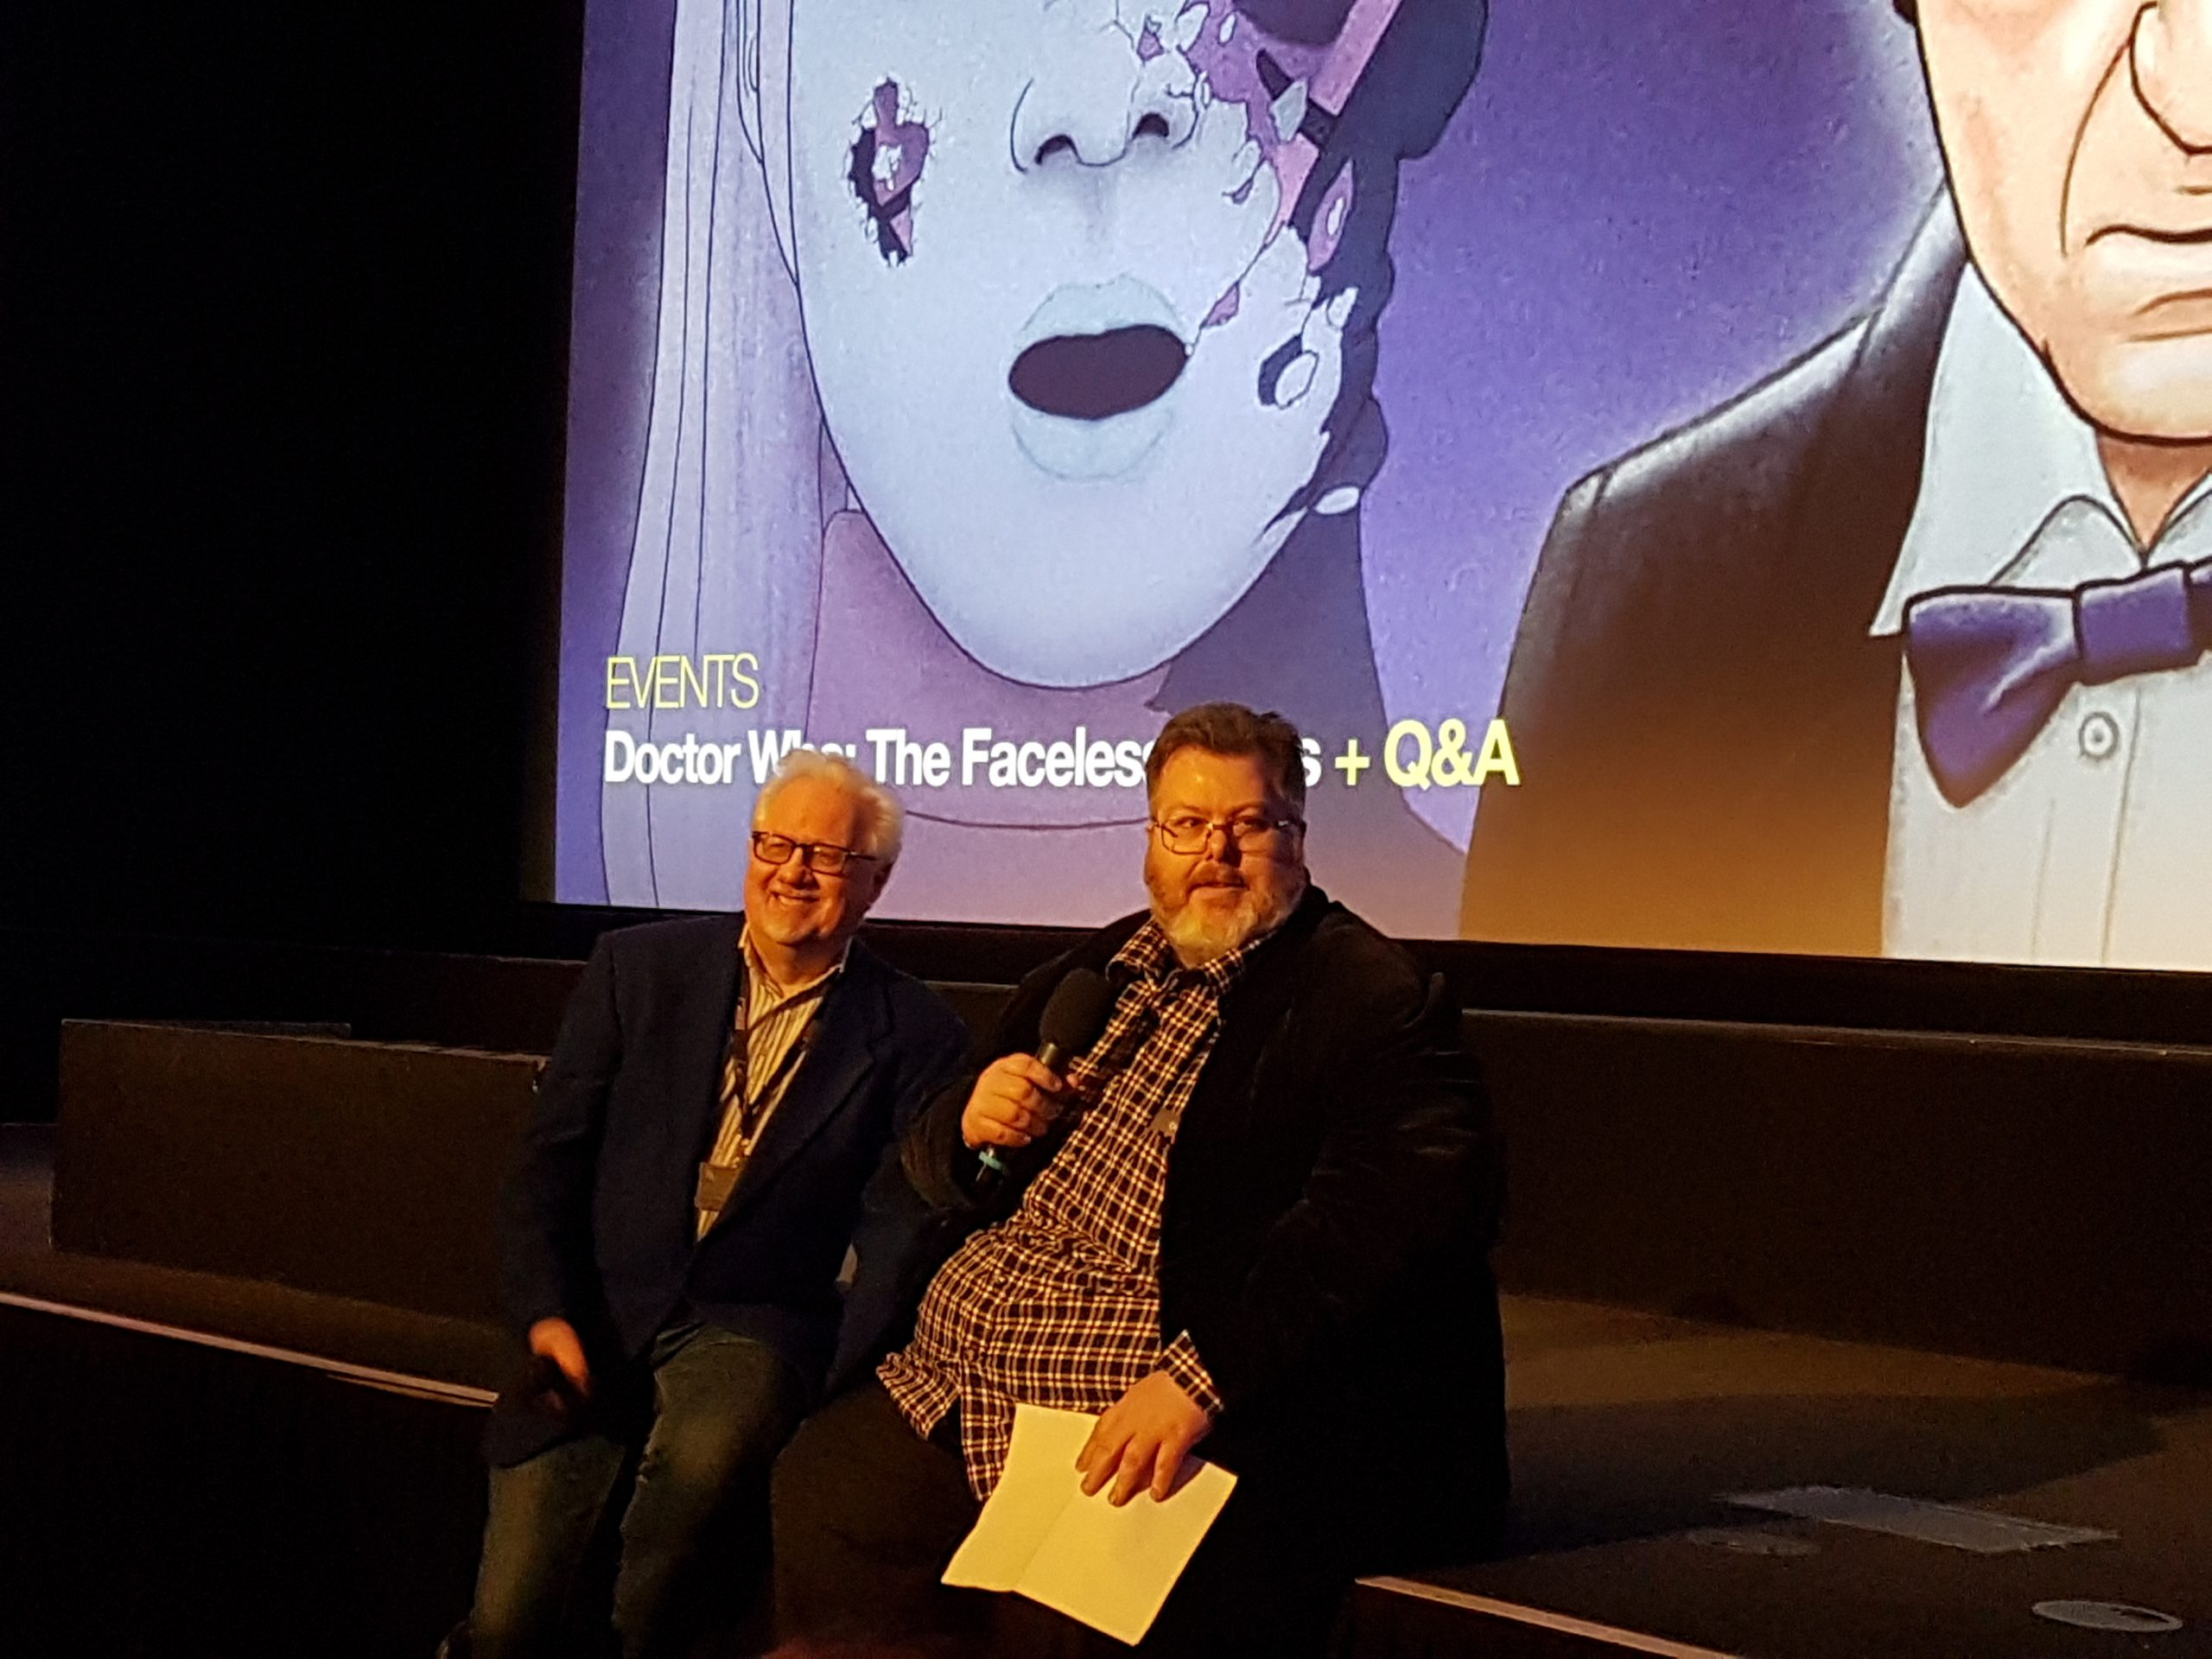 BFI hosts Dick Fiddy ( BFI Archive Television Programmer) and Justin Johnson (Lead Programmer for BFI)